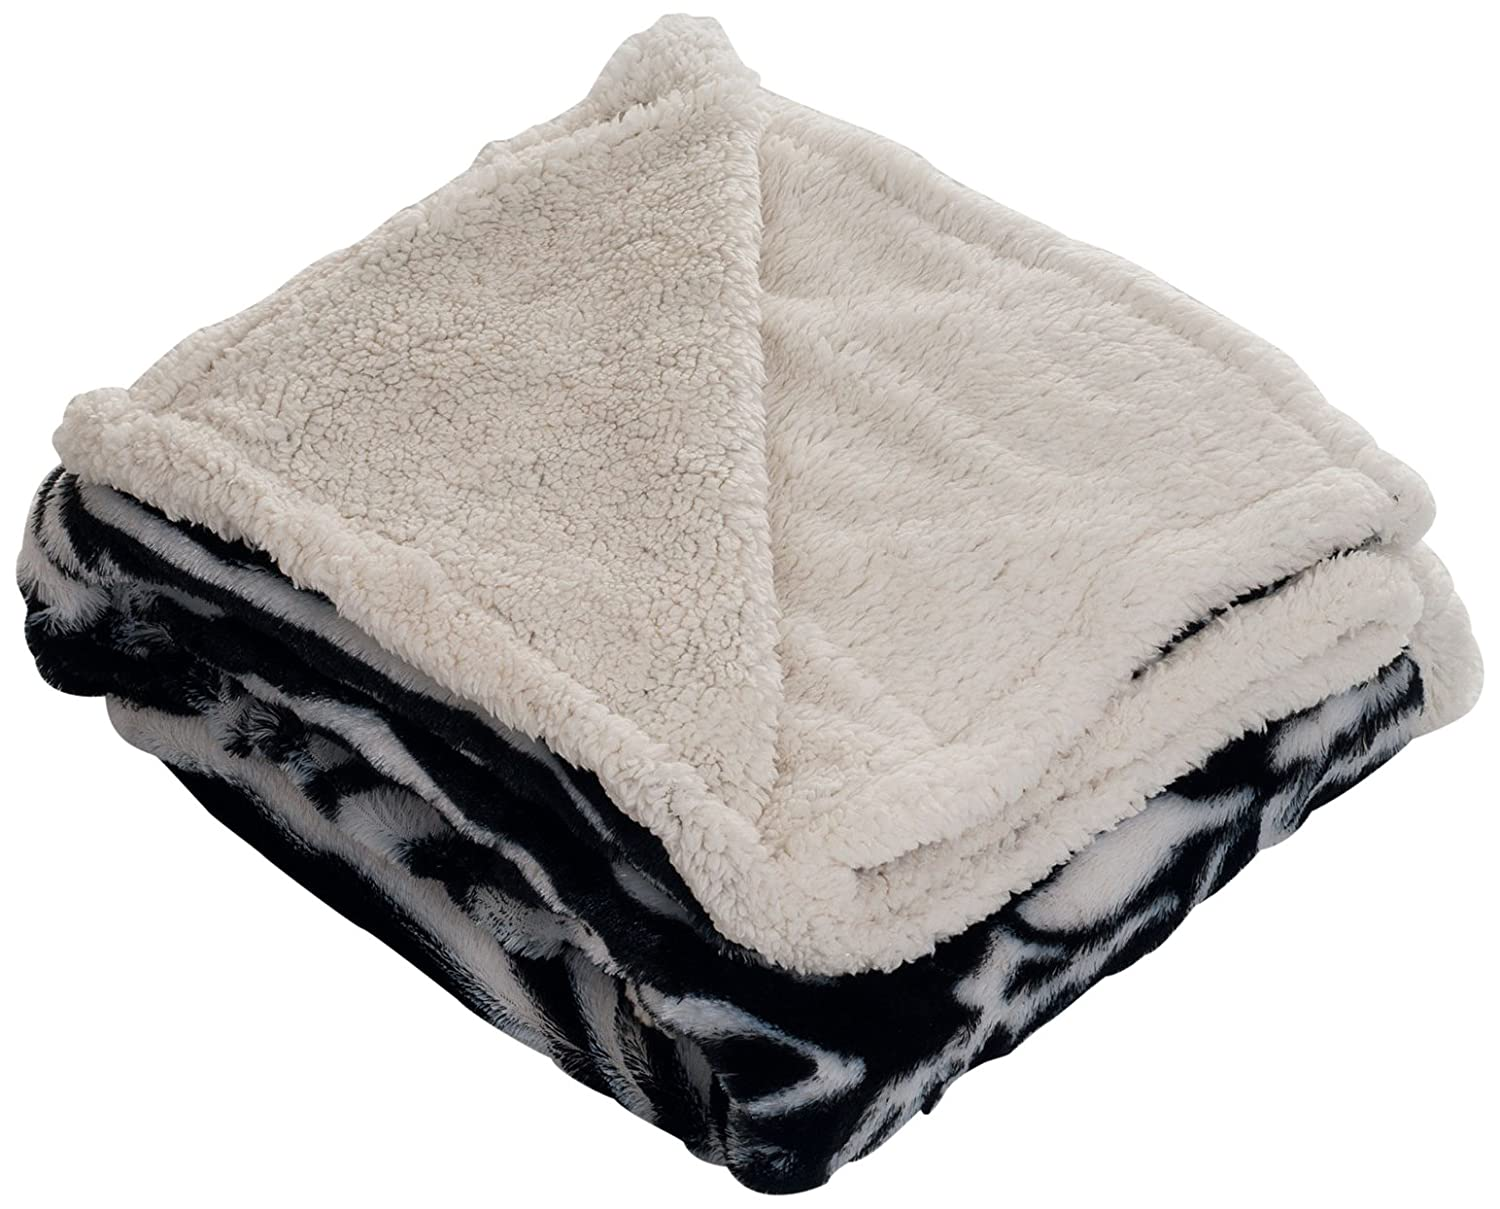 Lavish Home Throw Blanket, Fleece/Sherpa, Zebra